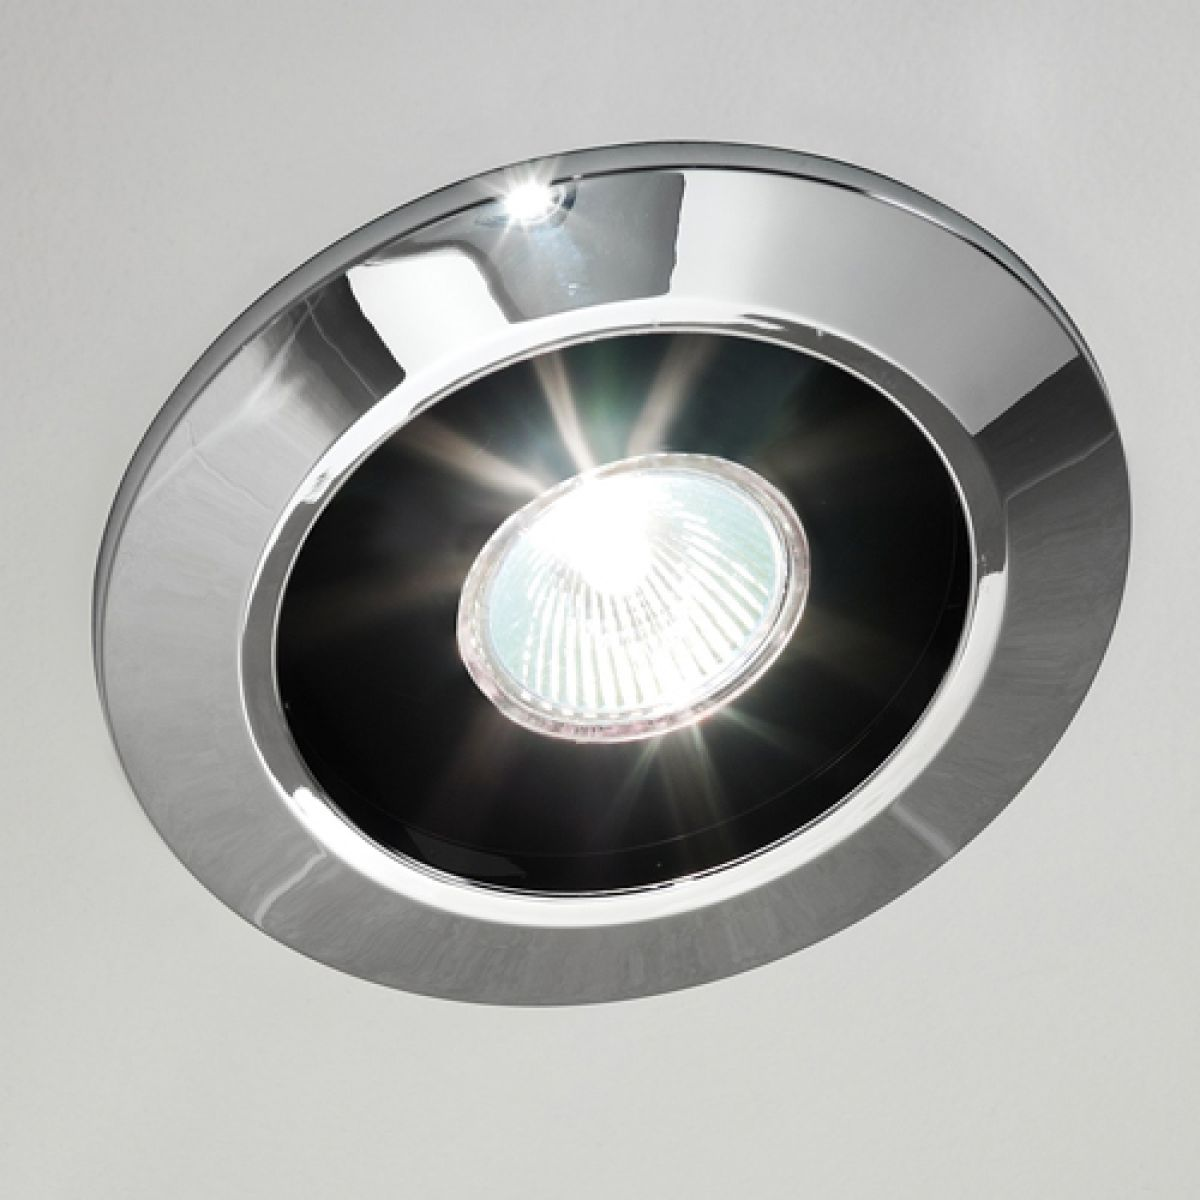 bathroom ceiling extractor fan with light zehnder silent ceiling fan ip24 uk bathrooms 24847